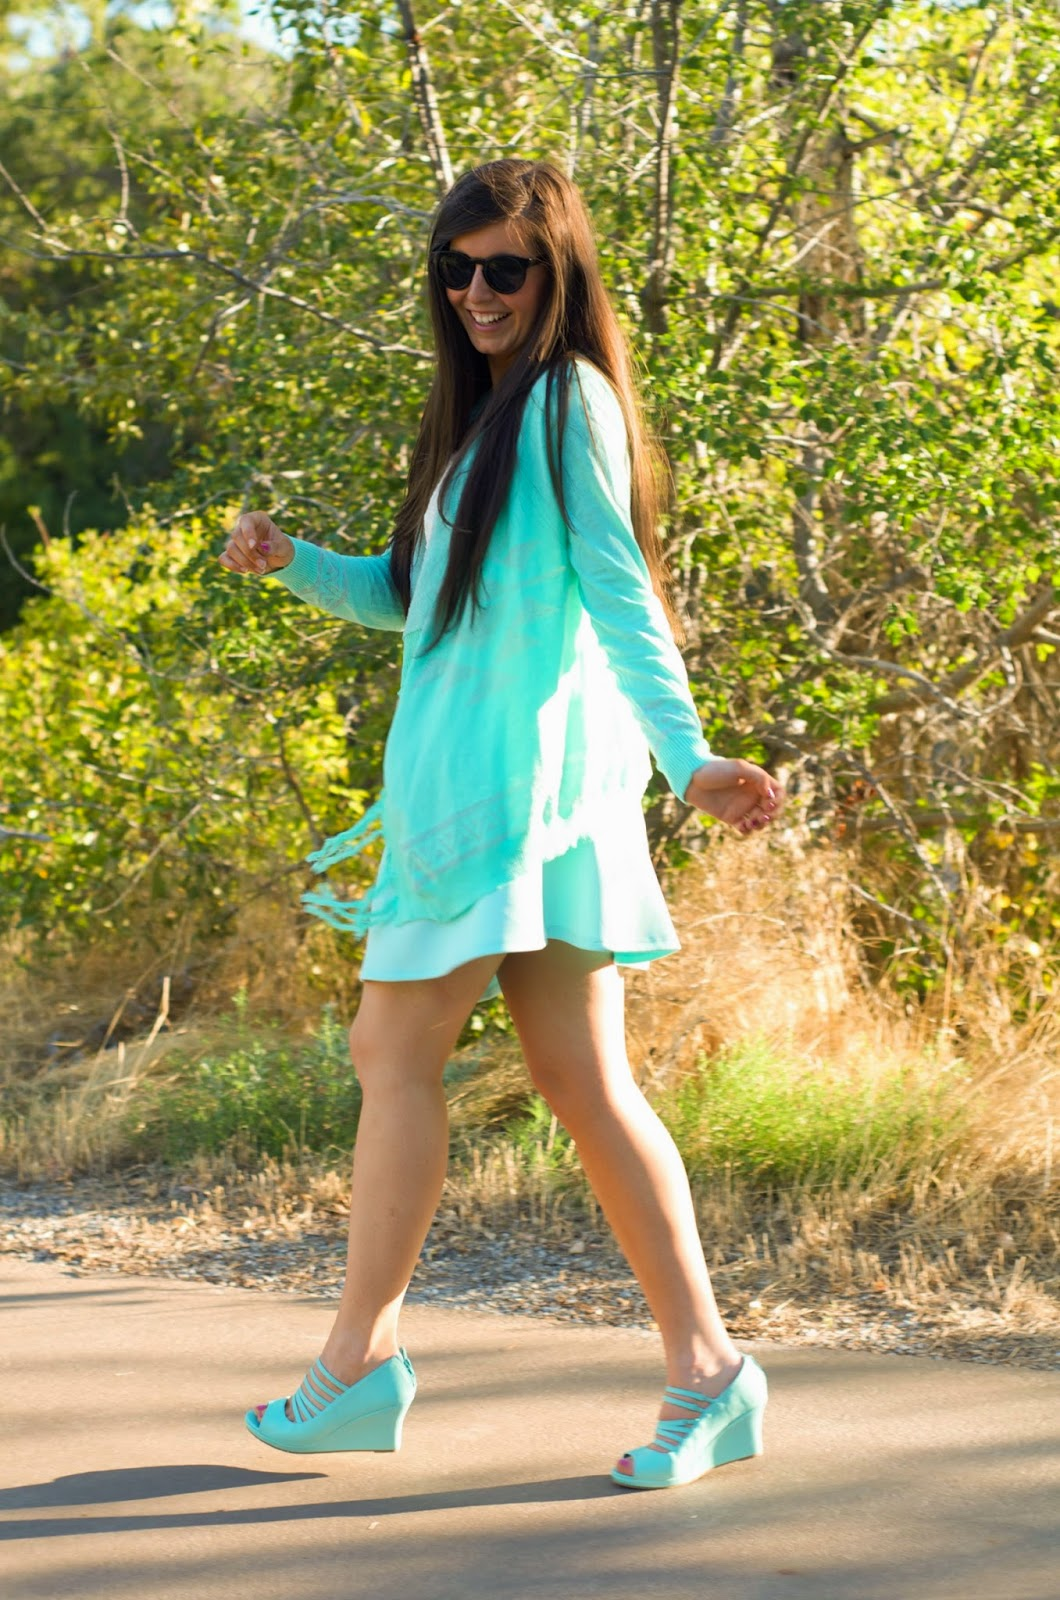 mint on mint, lace with mint skater skirt, mint kimono, mint sandal wedges, pretty outfit, ootd, outfit of the day, mint outfit to wear in the summer, summer outfit with mint skater skirt, mint kimono, kimono outfit, fringe kimono,